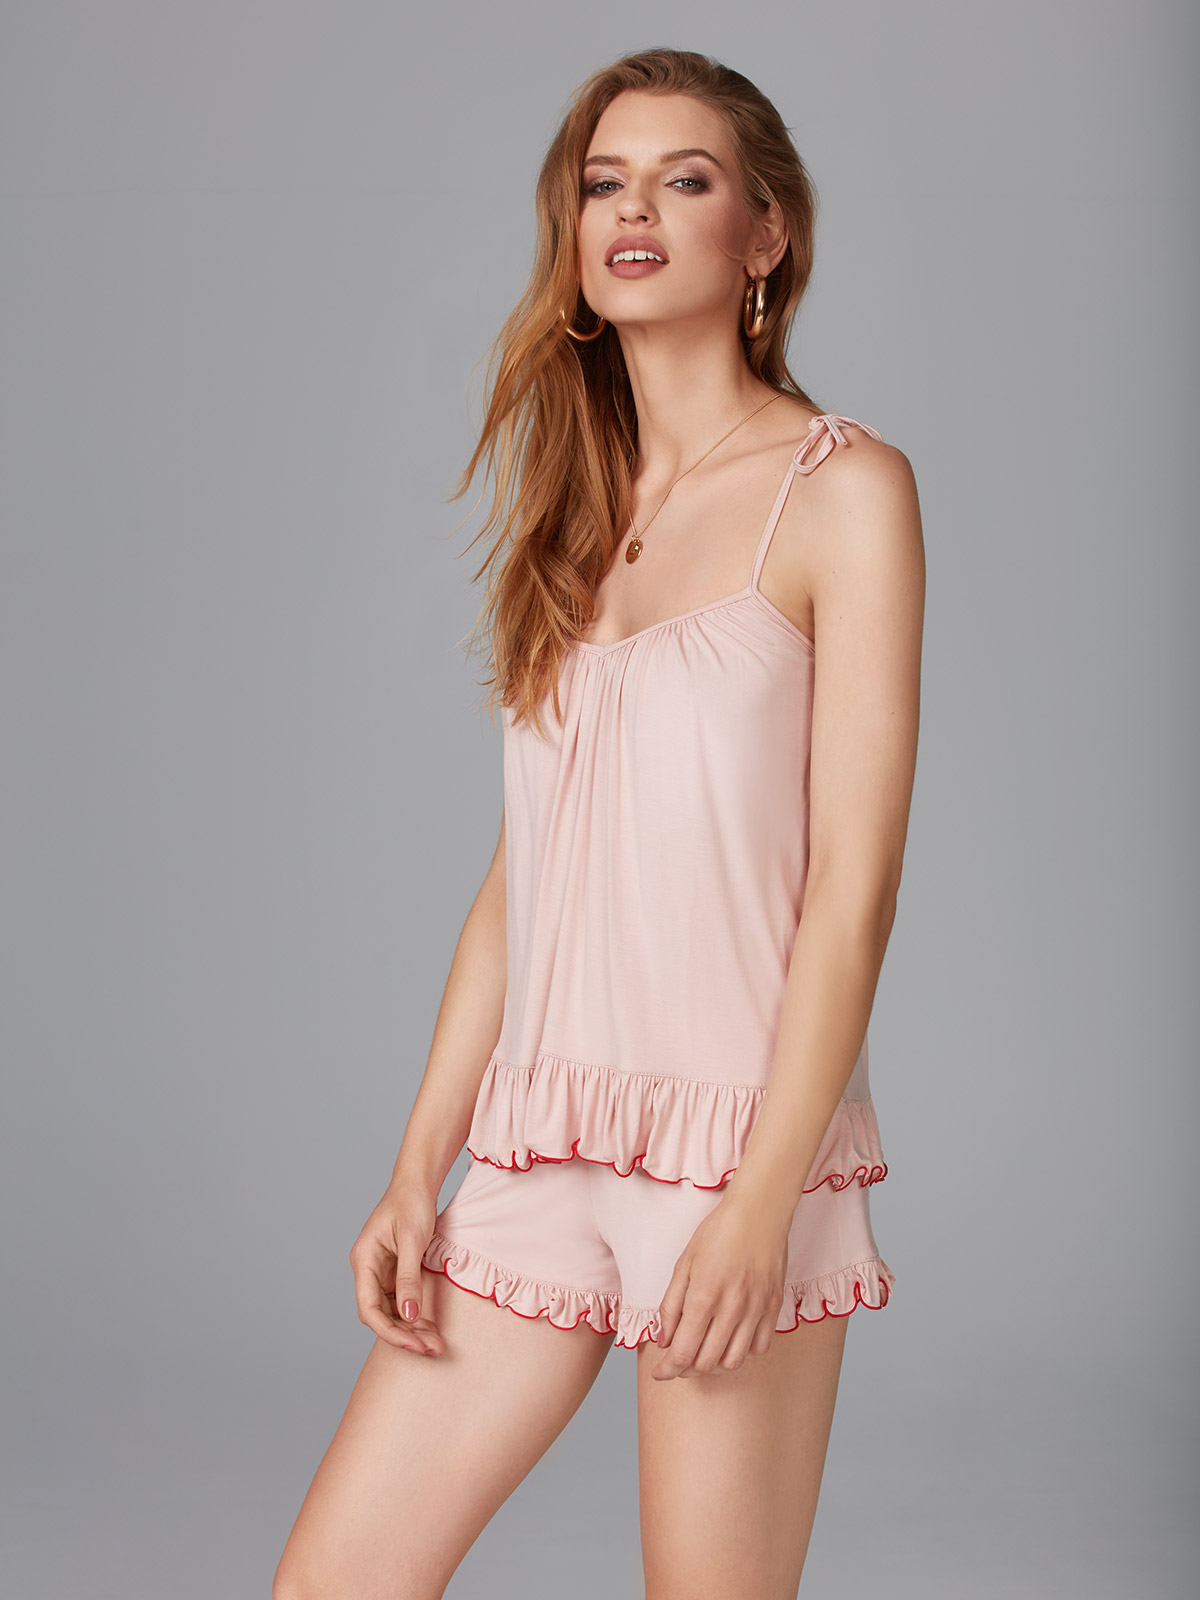 Look At Me OZ041 Top<br />02 Black, 64 Dusty Pink<br />Have Fun OZ042 Shorts<br />02 Black, 64 Dusty Pink